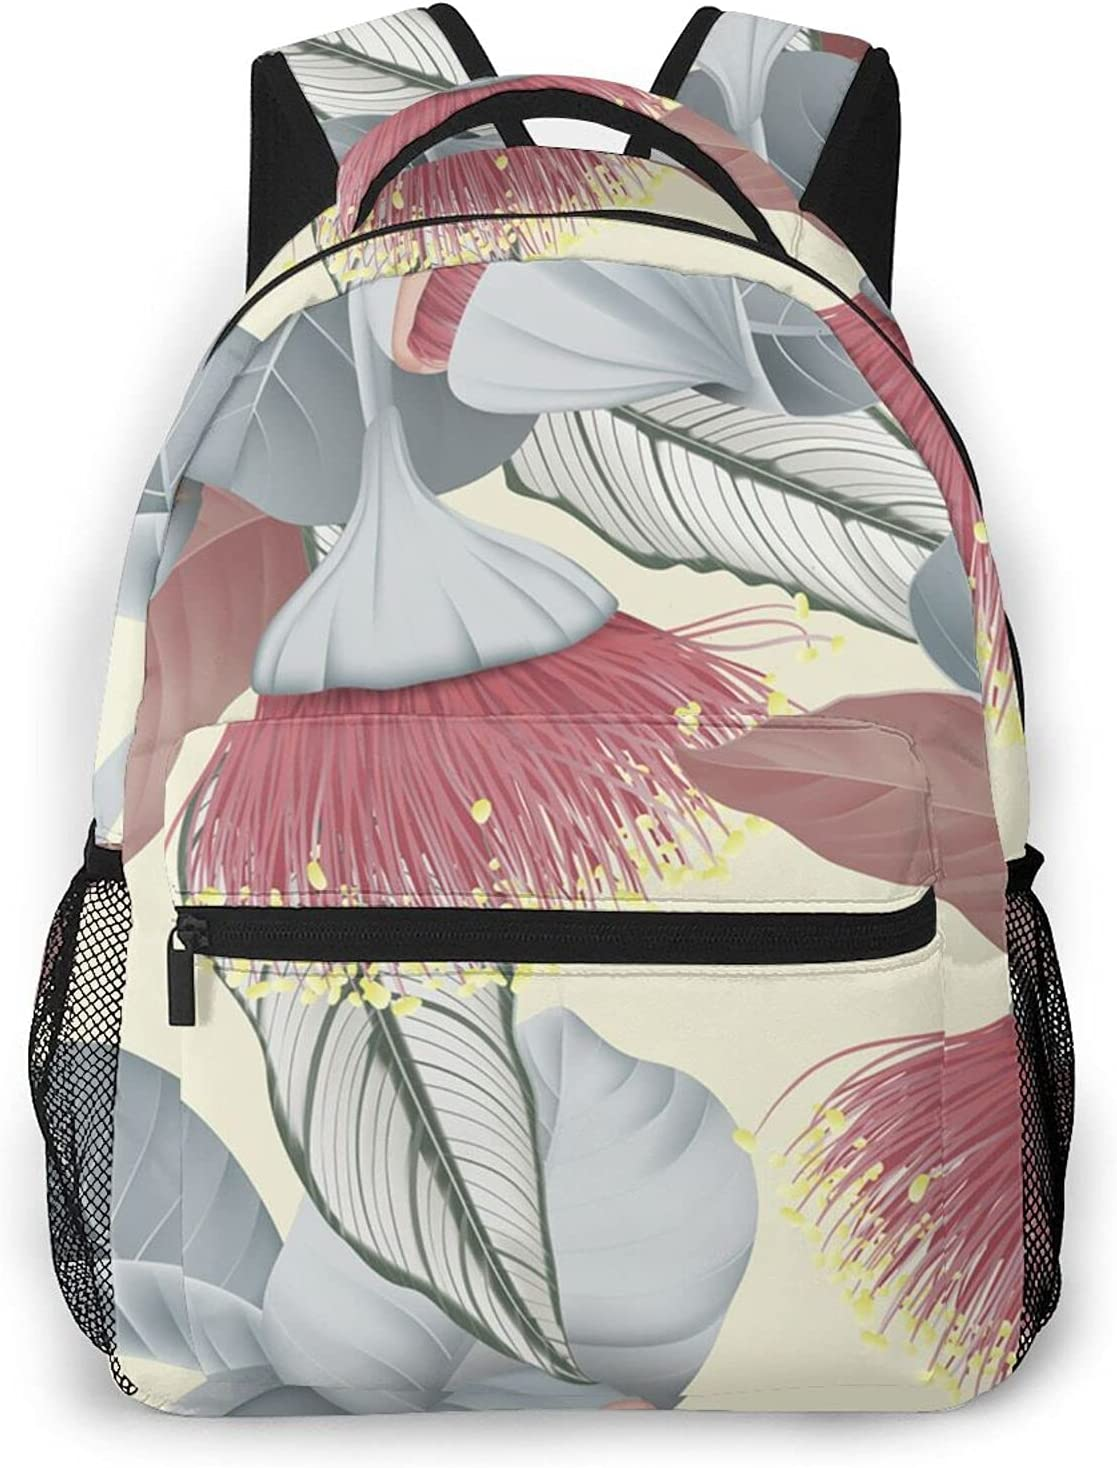 Lightweight Water Resistant Vintage Direct store Atlanta Mall Prints For Backpacks Teen Gi